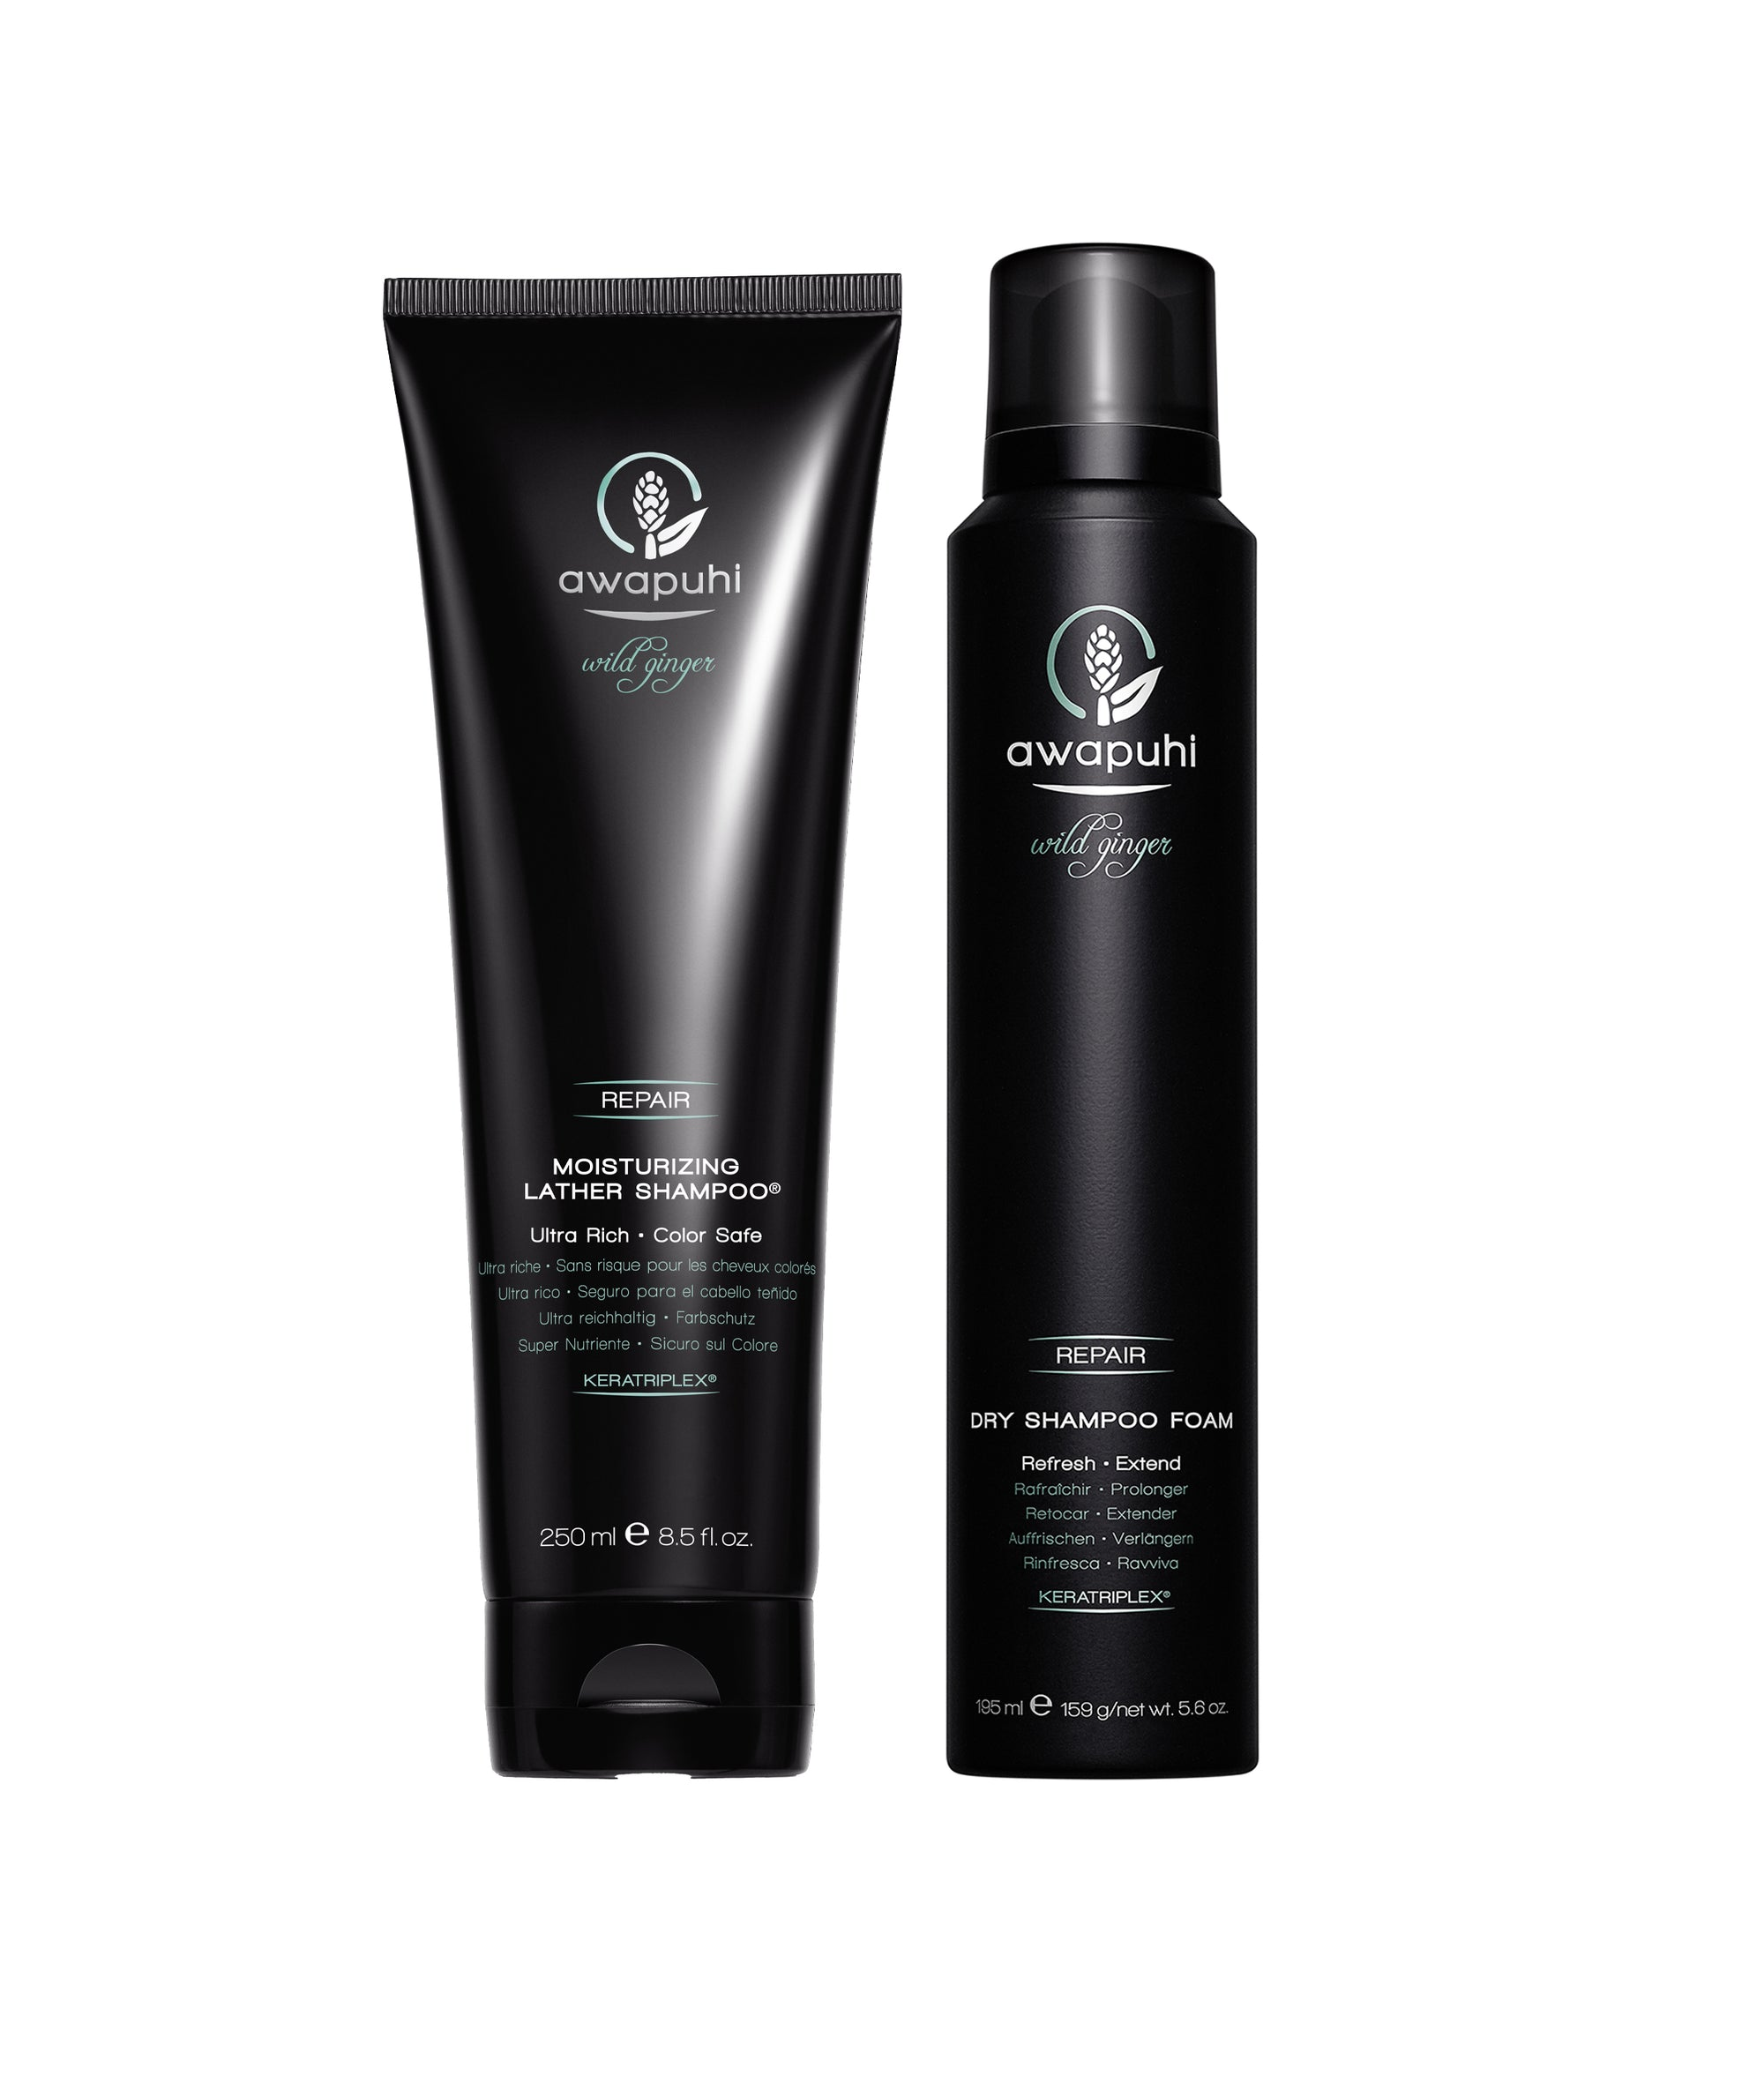 AWAPUHI WILD GINGER® Repair Cleaning